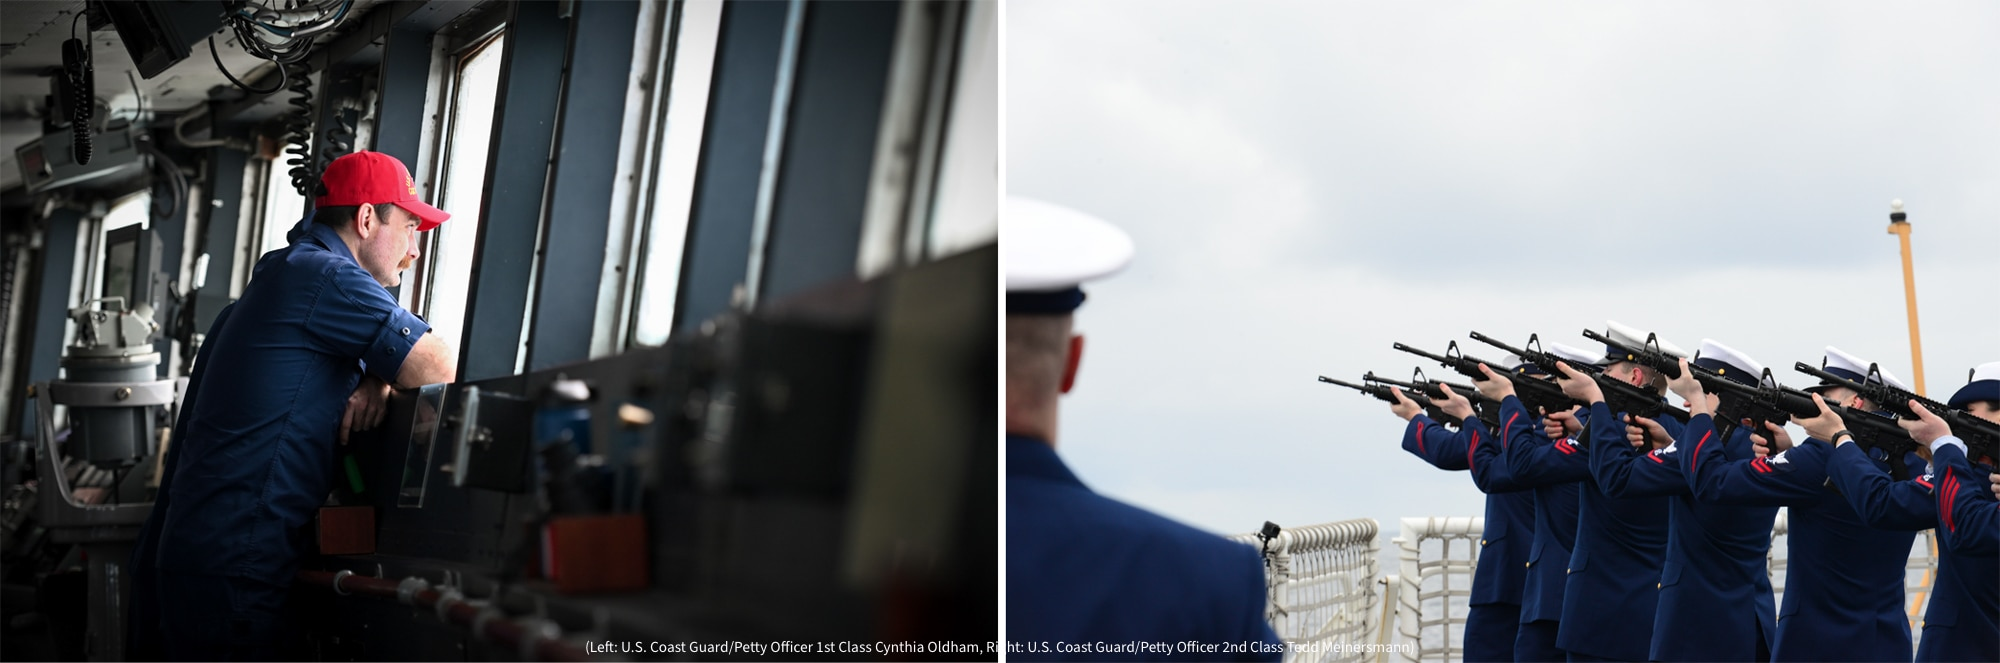 Left: Man looking out ship windows (U.S. Coast Guard/Petty Officer 1st Class Cynthia Oldham) Right: Line of sailors aiming rifles at sky (U.S. Coast Guard/Petty Officer 2nd Class Tedd Meinersmann)